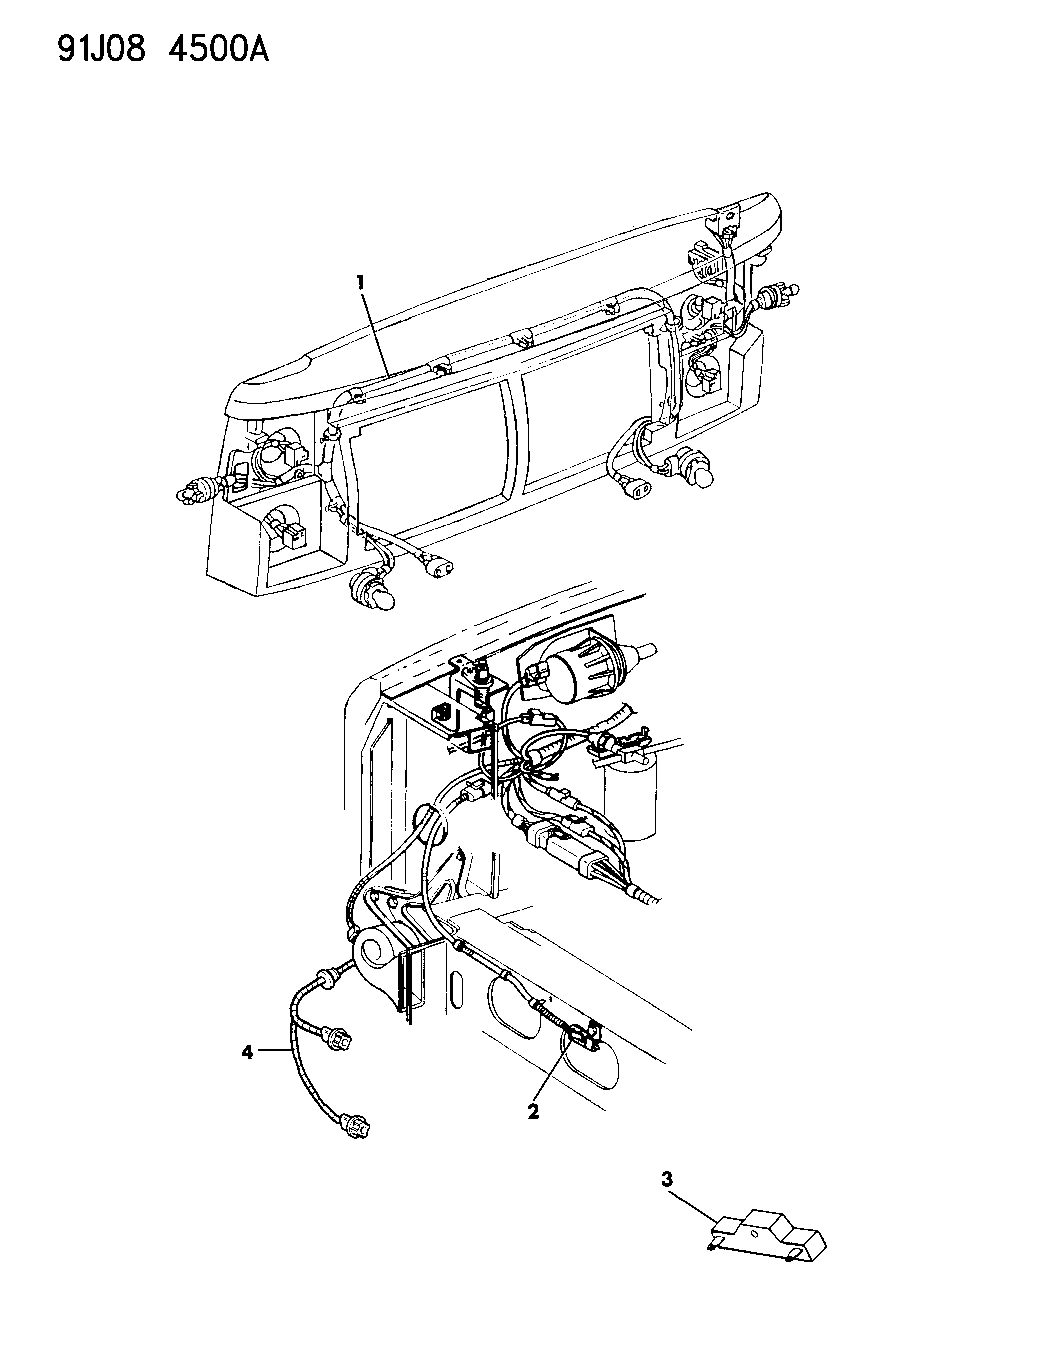 1992 Jeep Cherokee Wiring Front End Mopar Parts Giant 92 Diagram